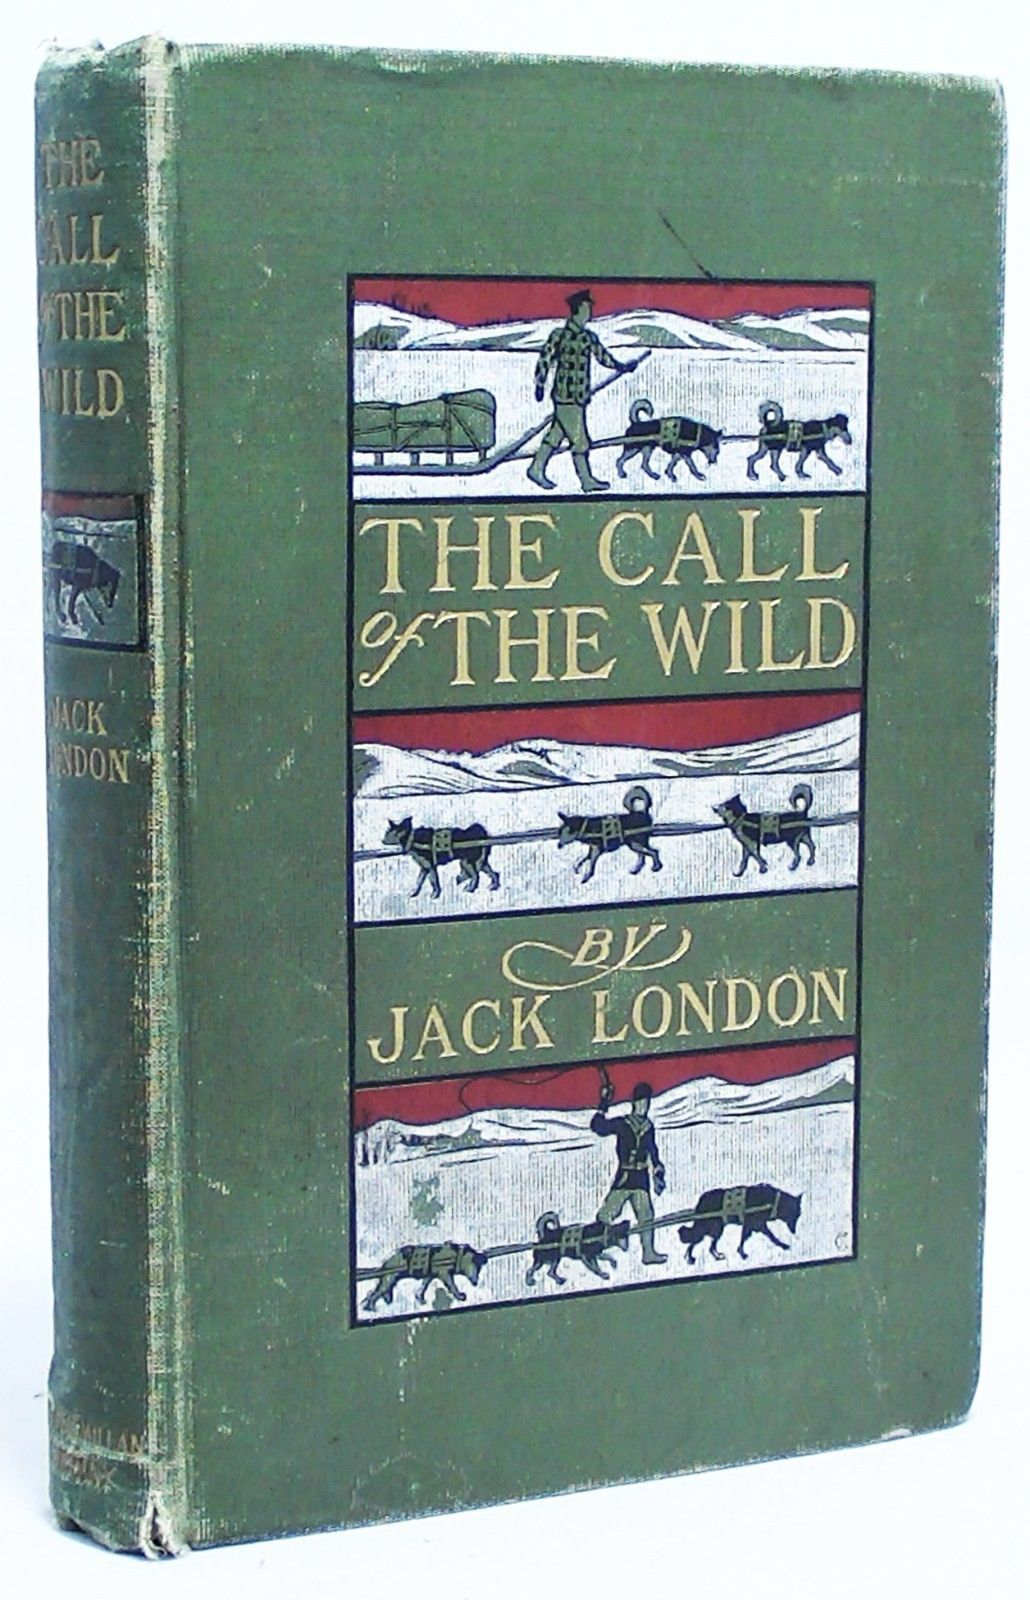 """I would rather be a superb meteor, every atom of me in magnificent glow, than a sleepy and permanent planet."" - Jack London  The Call of the Wild by Jack London, First Edition 1903  www.RareBooksFirst.com  Rare Books from 1st Editions and Antiquarian Books  #rarebooksfirst   #rarebooks   #jacklondon"